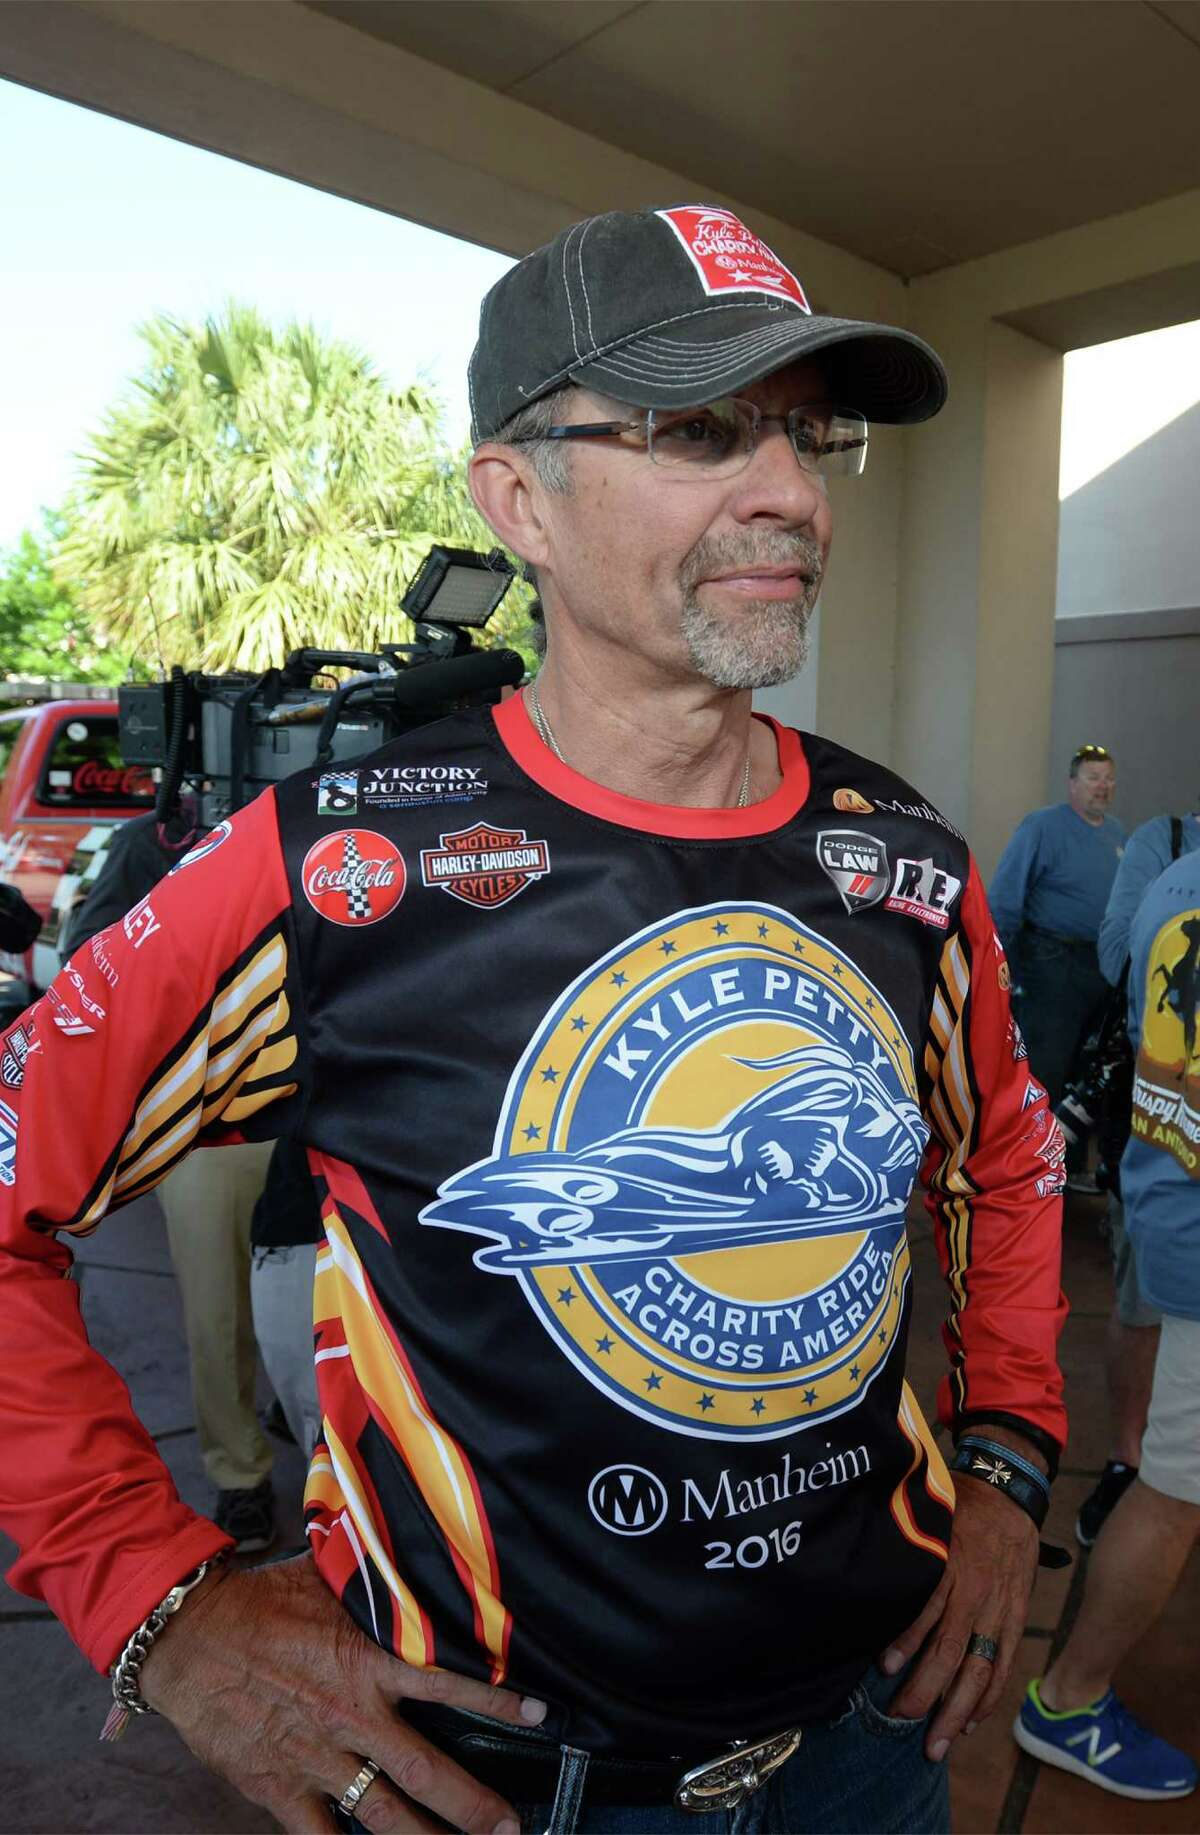 Kyle Petty and numerous motorcyclists rode into Beaumont Thursday as part of Kyle Petty Charity Ride Across America. The event raises money for Victory Junction. Photo taken Thursday, May 05, 2016 Guiseppe Barranco/The Enterprise